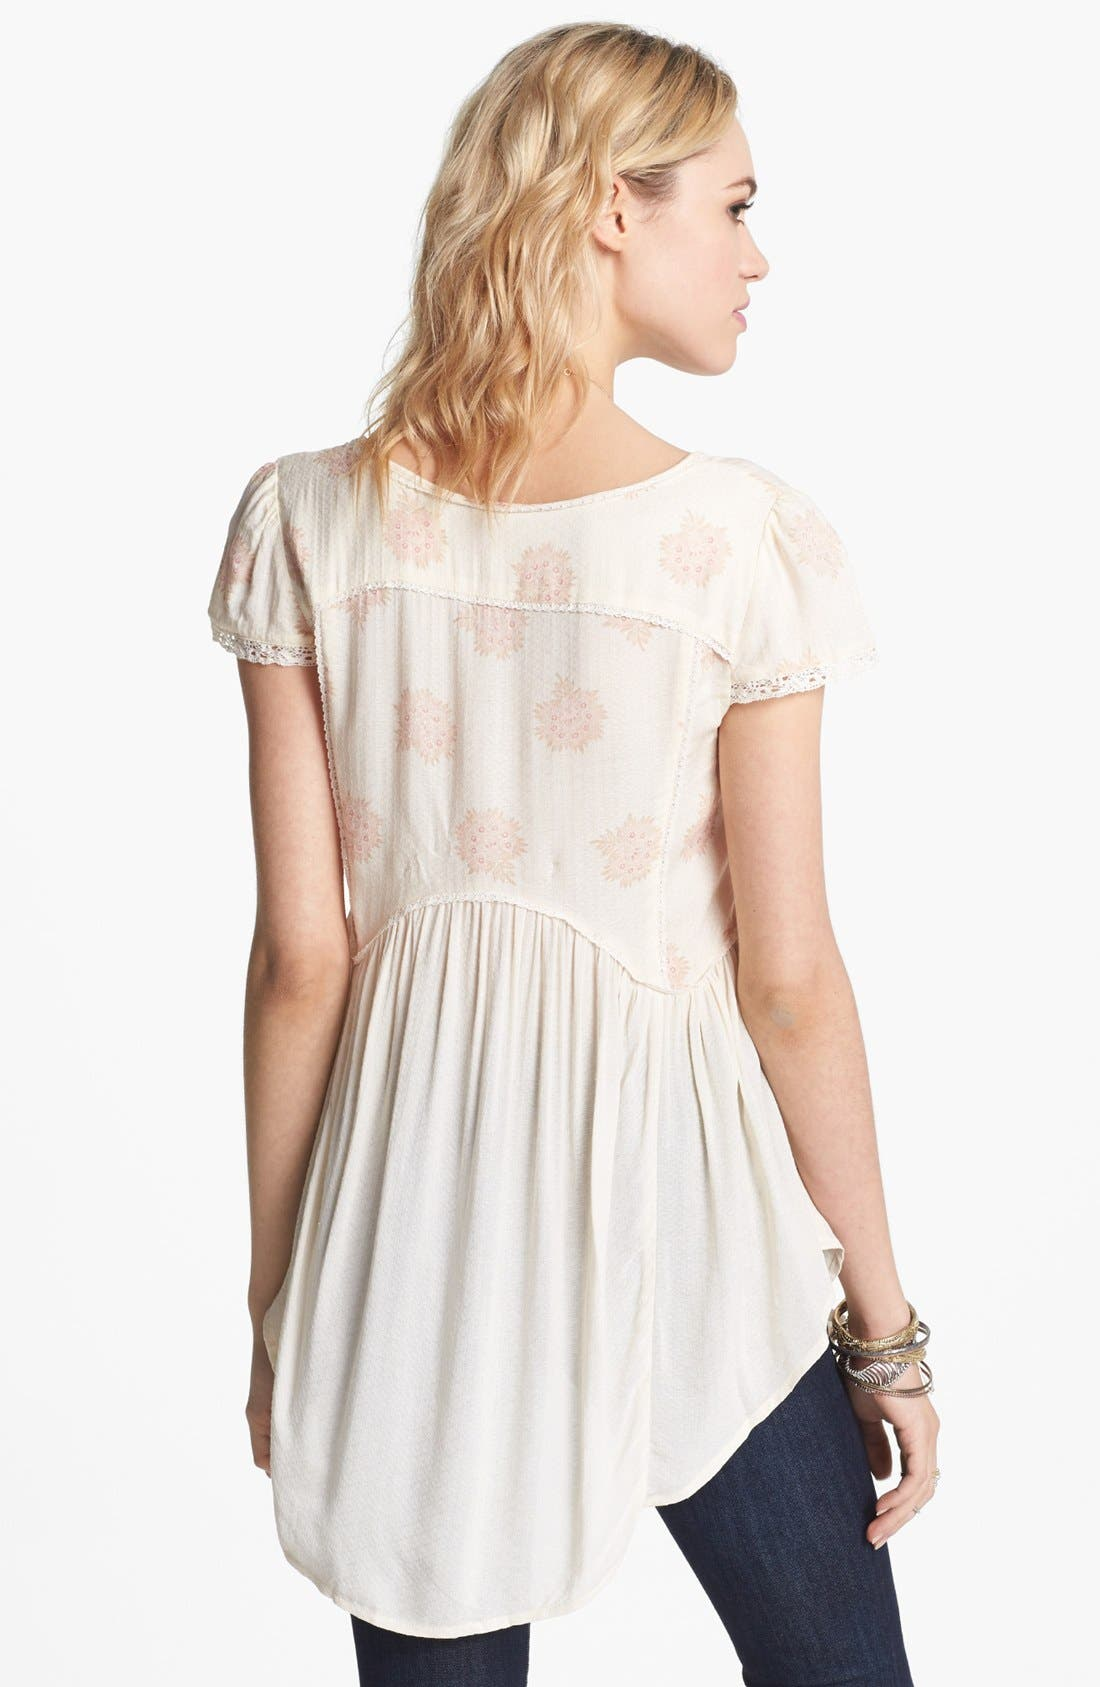 'Shake Dandelion' Babydoll Top,                             Alternate thumbnail 2, color,                             Creme Combo